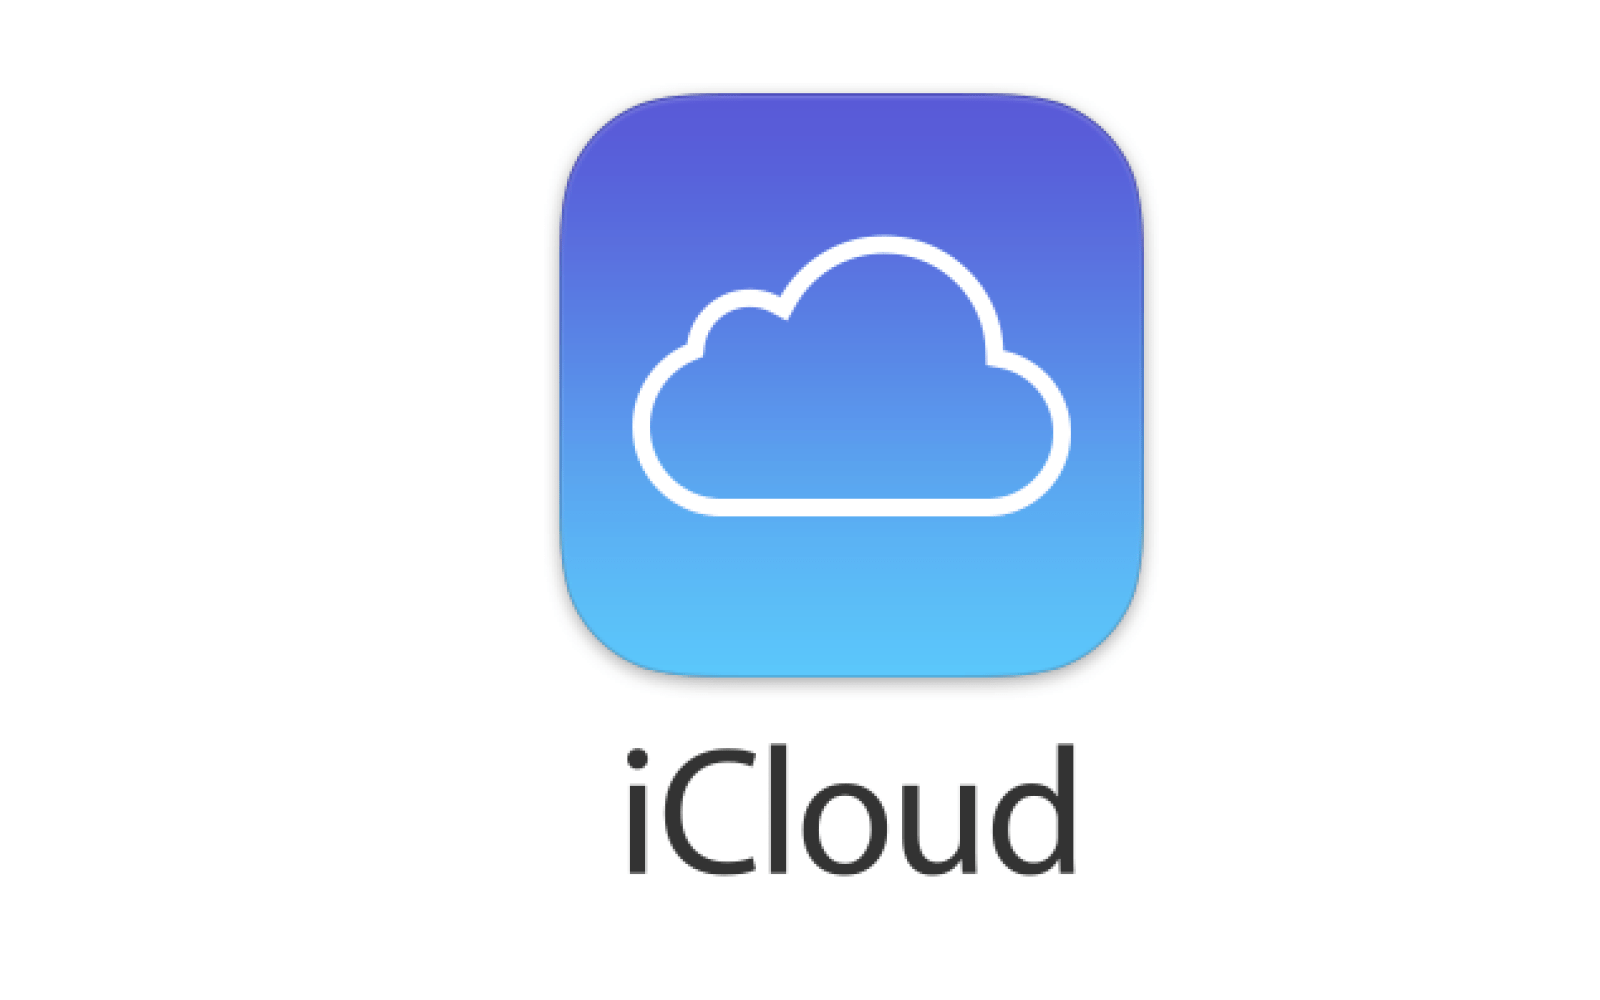 How-to: Safely delete or change an iCloud account from your Mac or iOS device